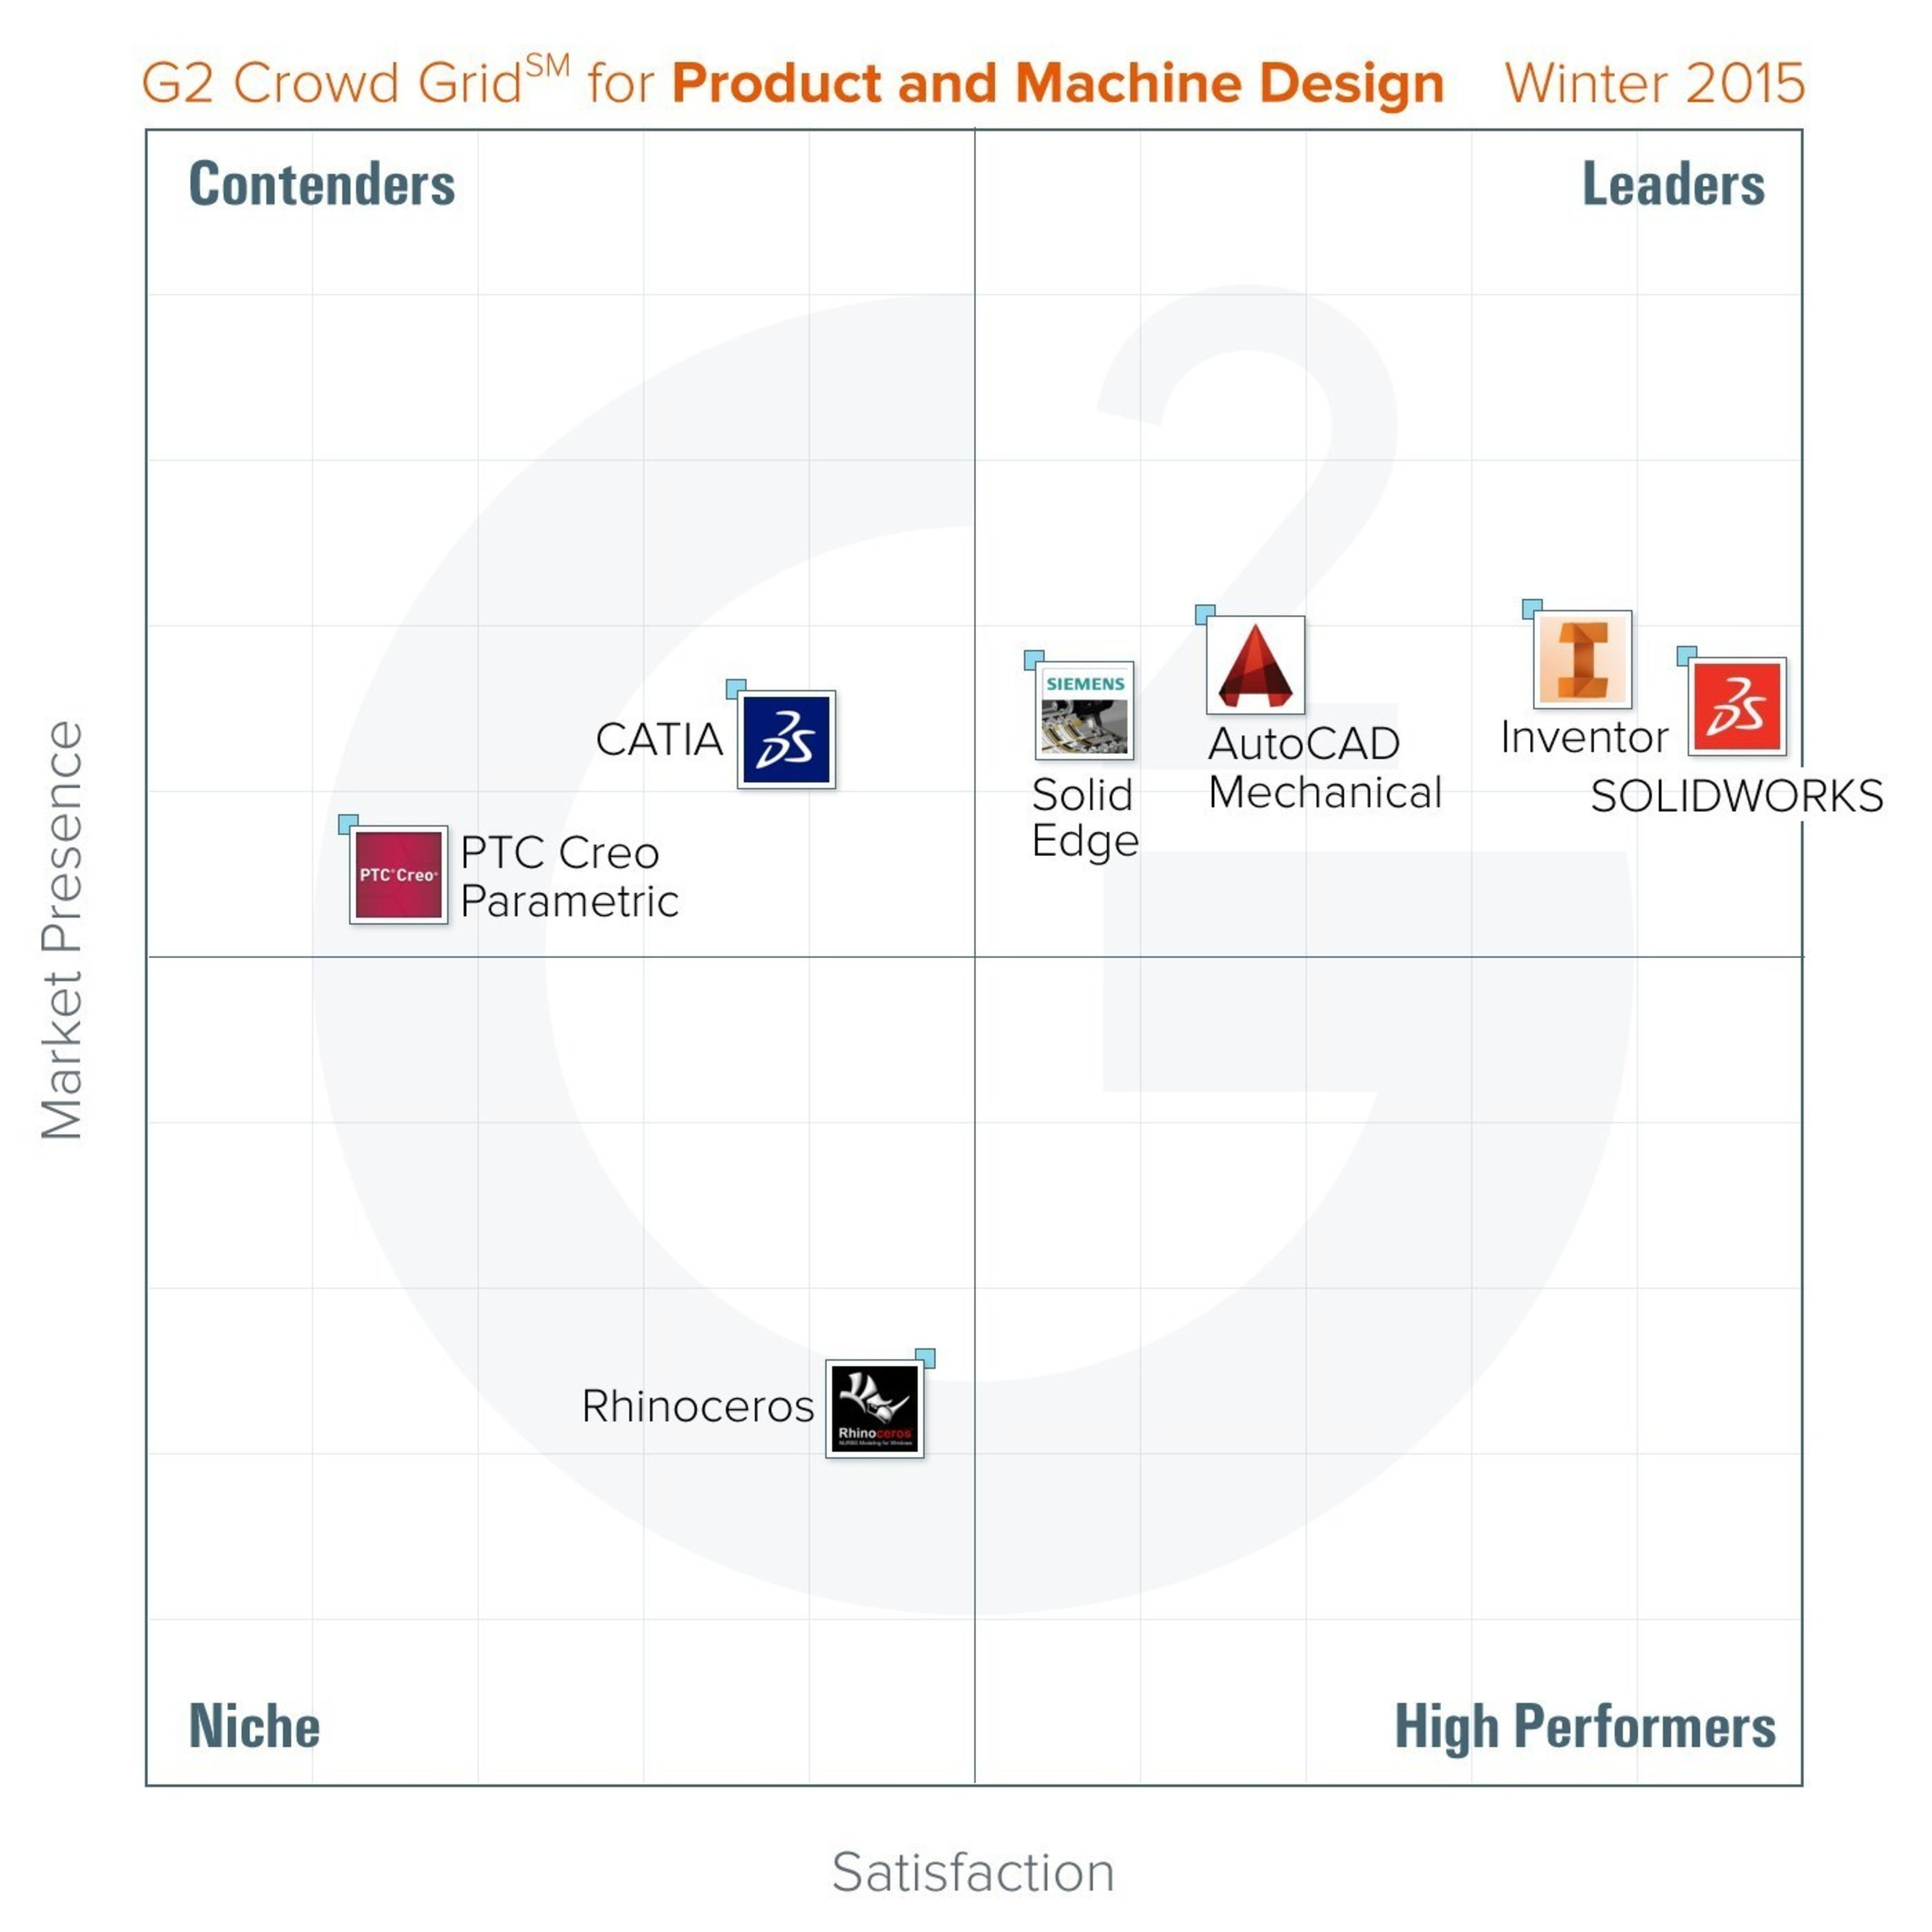 G2 Crowd Publishes Winter 2015 Rankings Of The Best Product And Machine Design Software